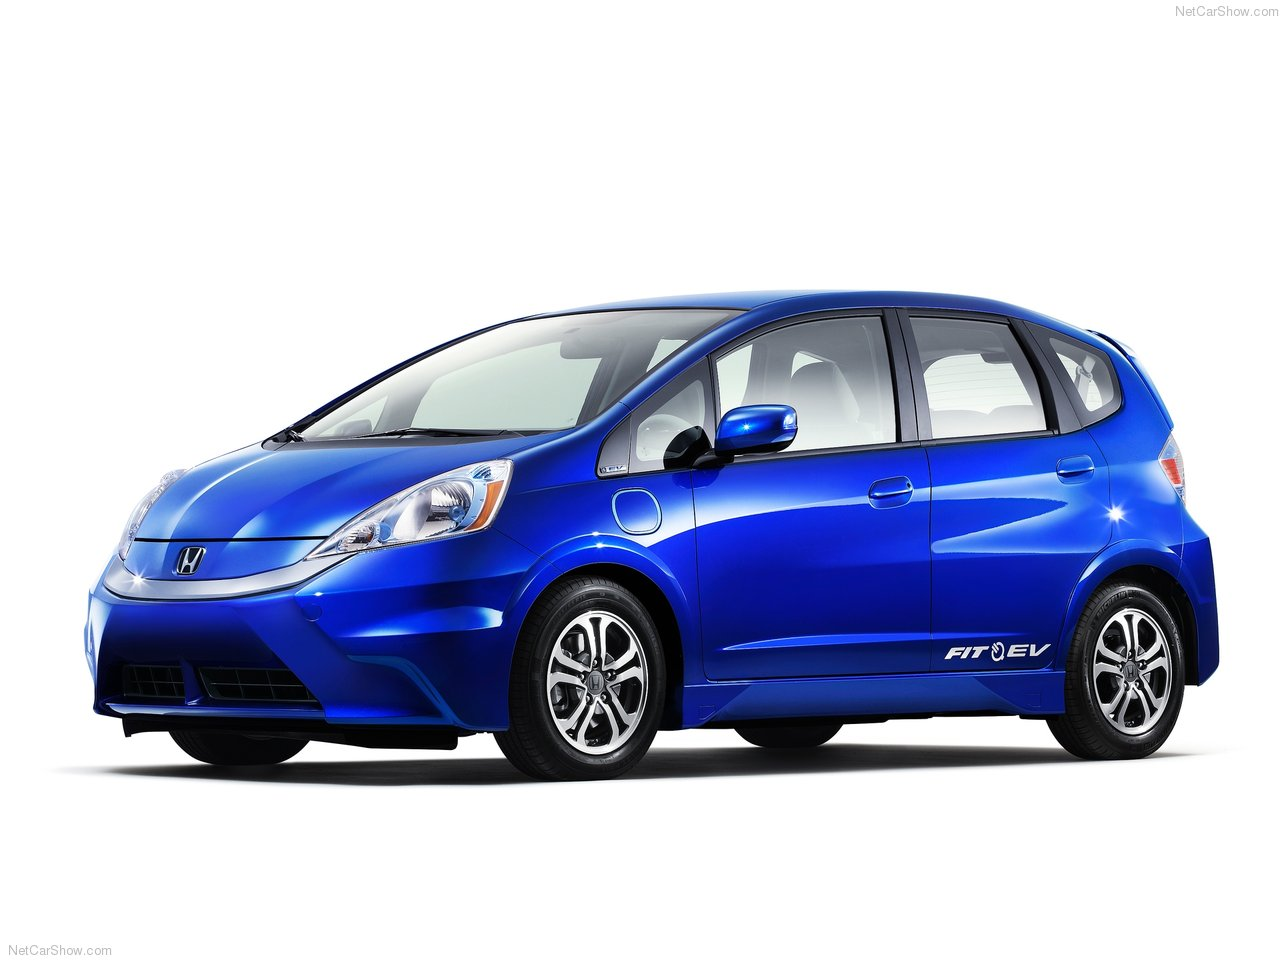 Honda-Fit_EV_2013_1280x960_wallpaper_01.-3.bp.blogspot.com